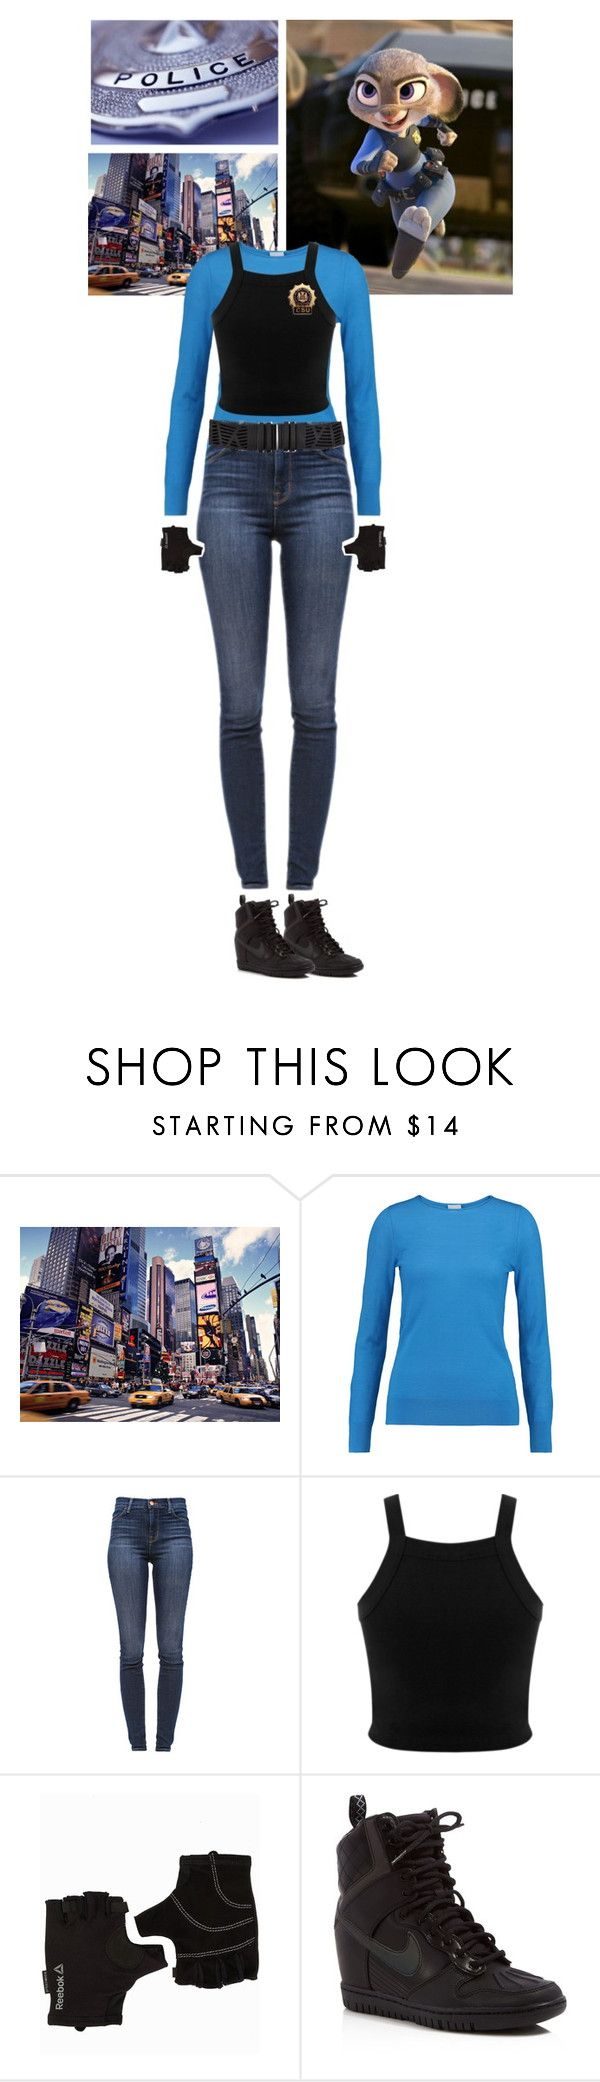 """zootopia: judy hopps"" by novemberwitch ❤ liked on Polyvore featuring Iris & Ink, J Brand, Miss Selfridge, Reebok, NIKE, POLICE, women's clothing, women, female and woman"